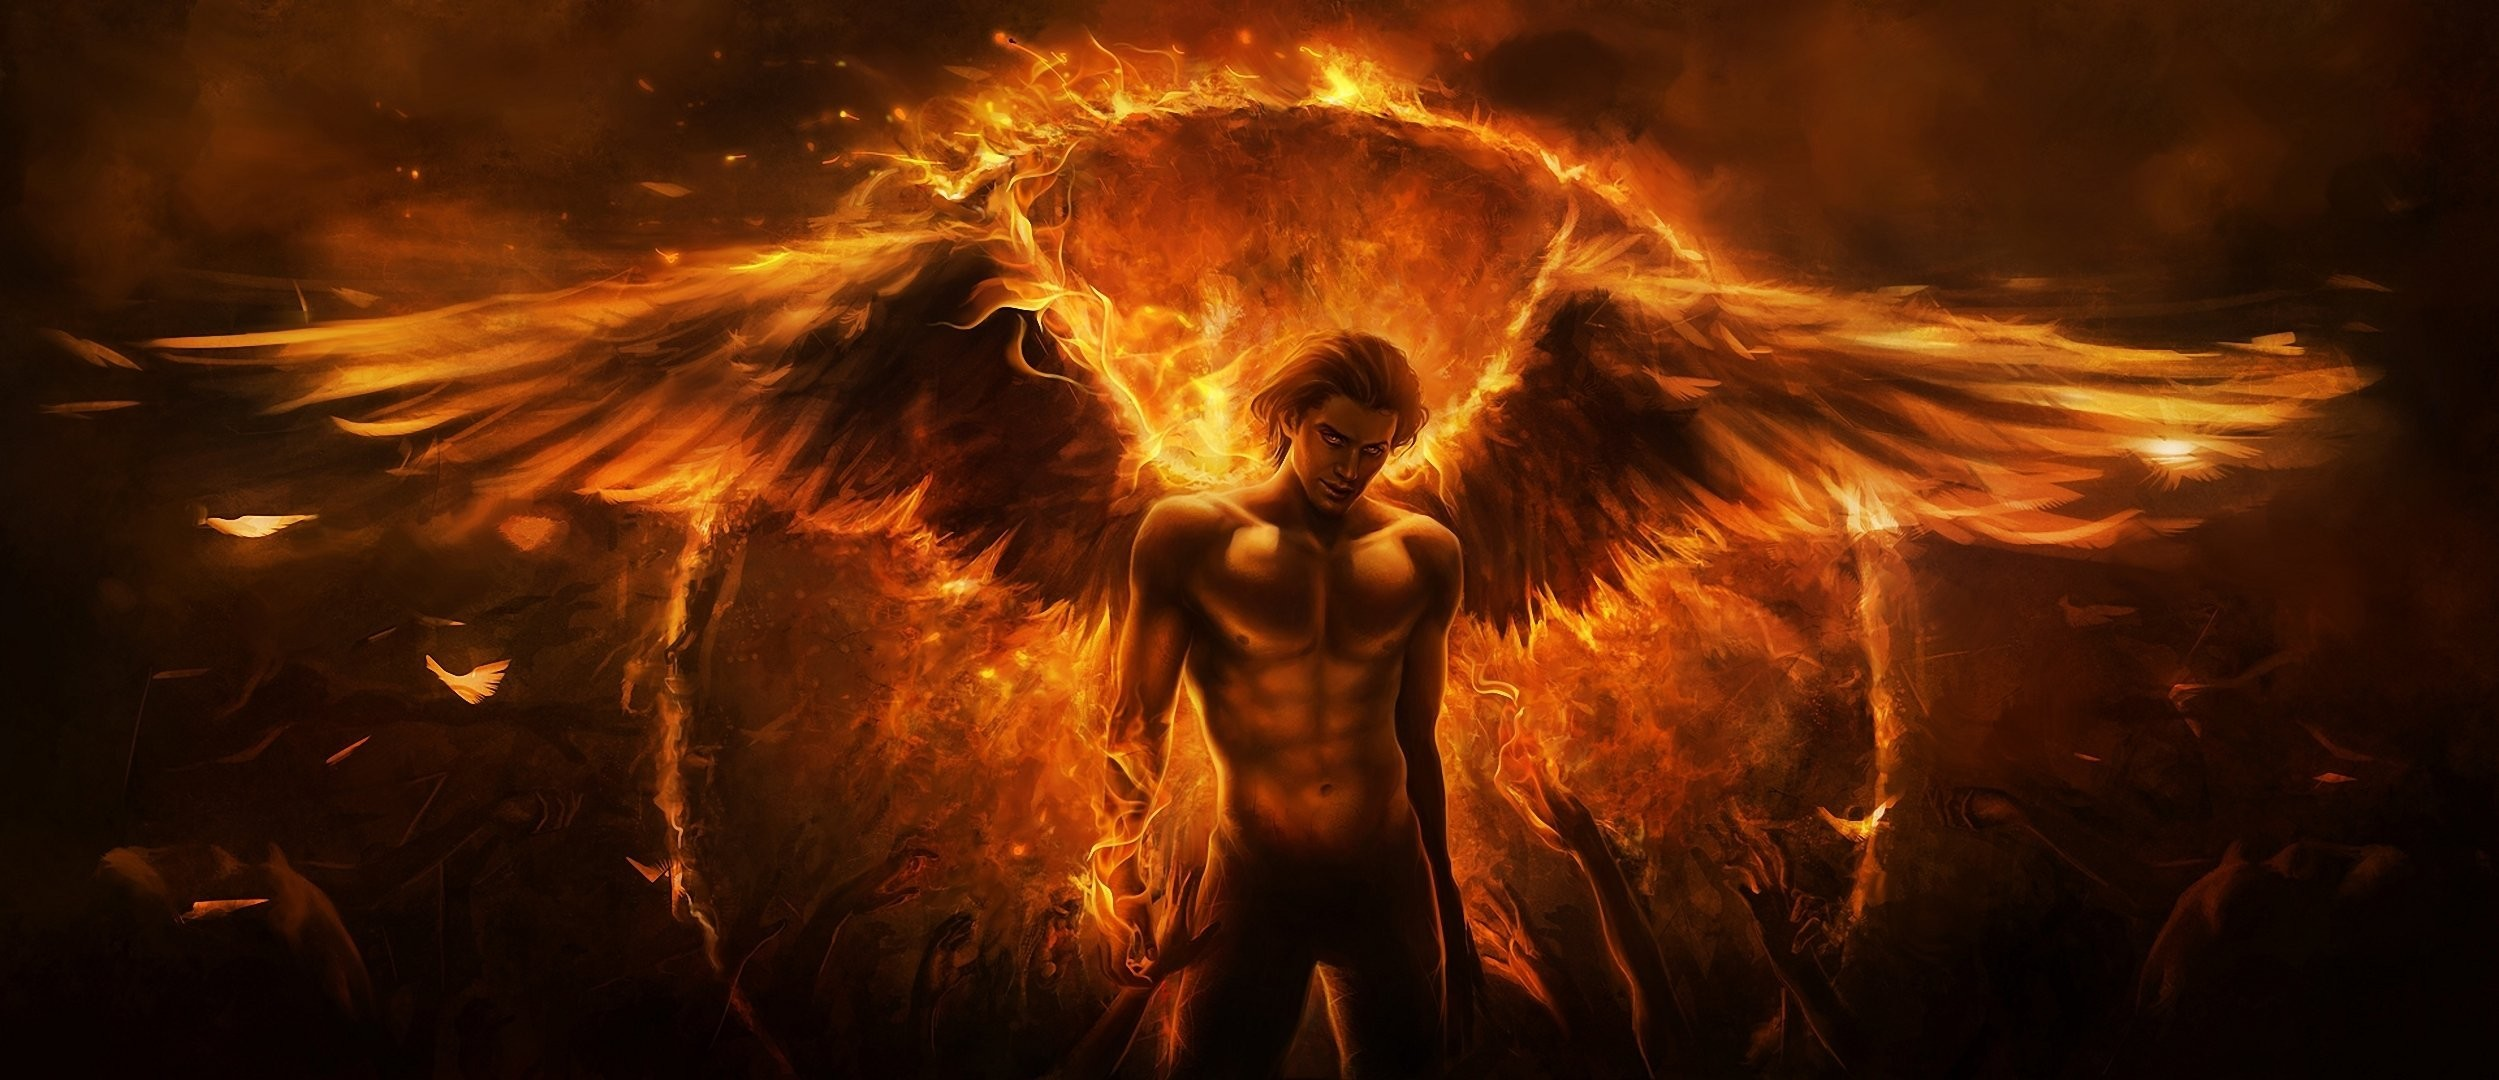 2499x1080 art imaliea guy angel demon fire wings hands